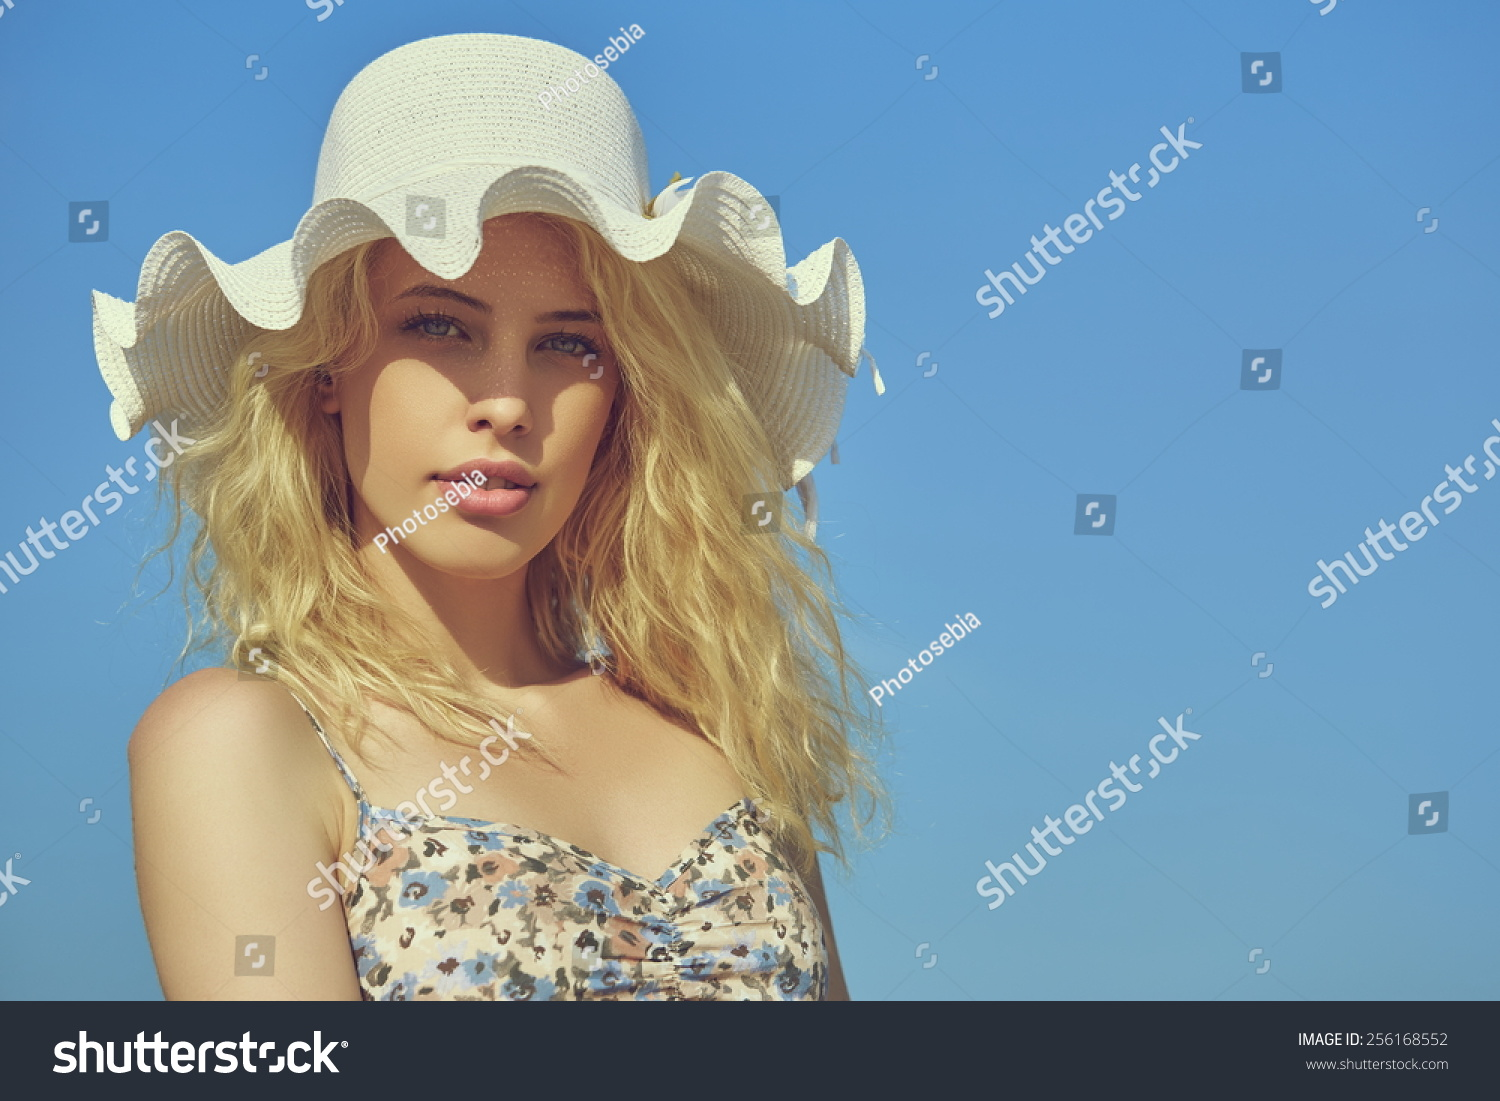 Portrait of beautiful young lady with long blond curly hair and blue eyes wearing  white sun hat with wavy brim over clear blue sky. Copy space. - Image 7fc3c88f9d3b